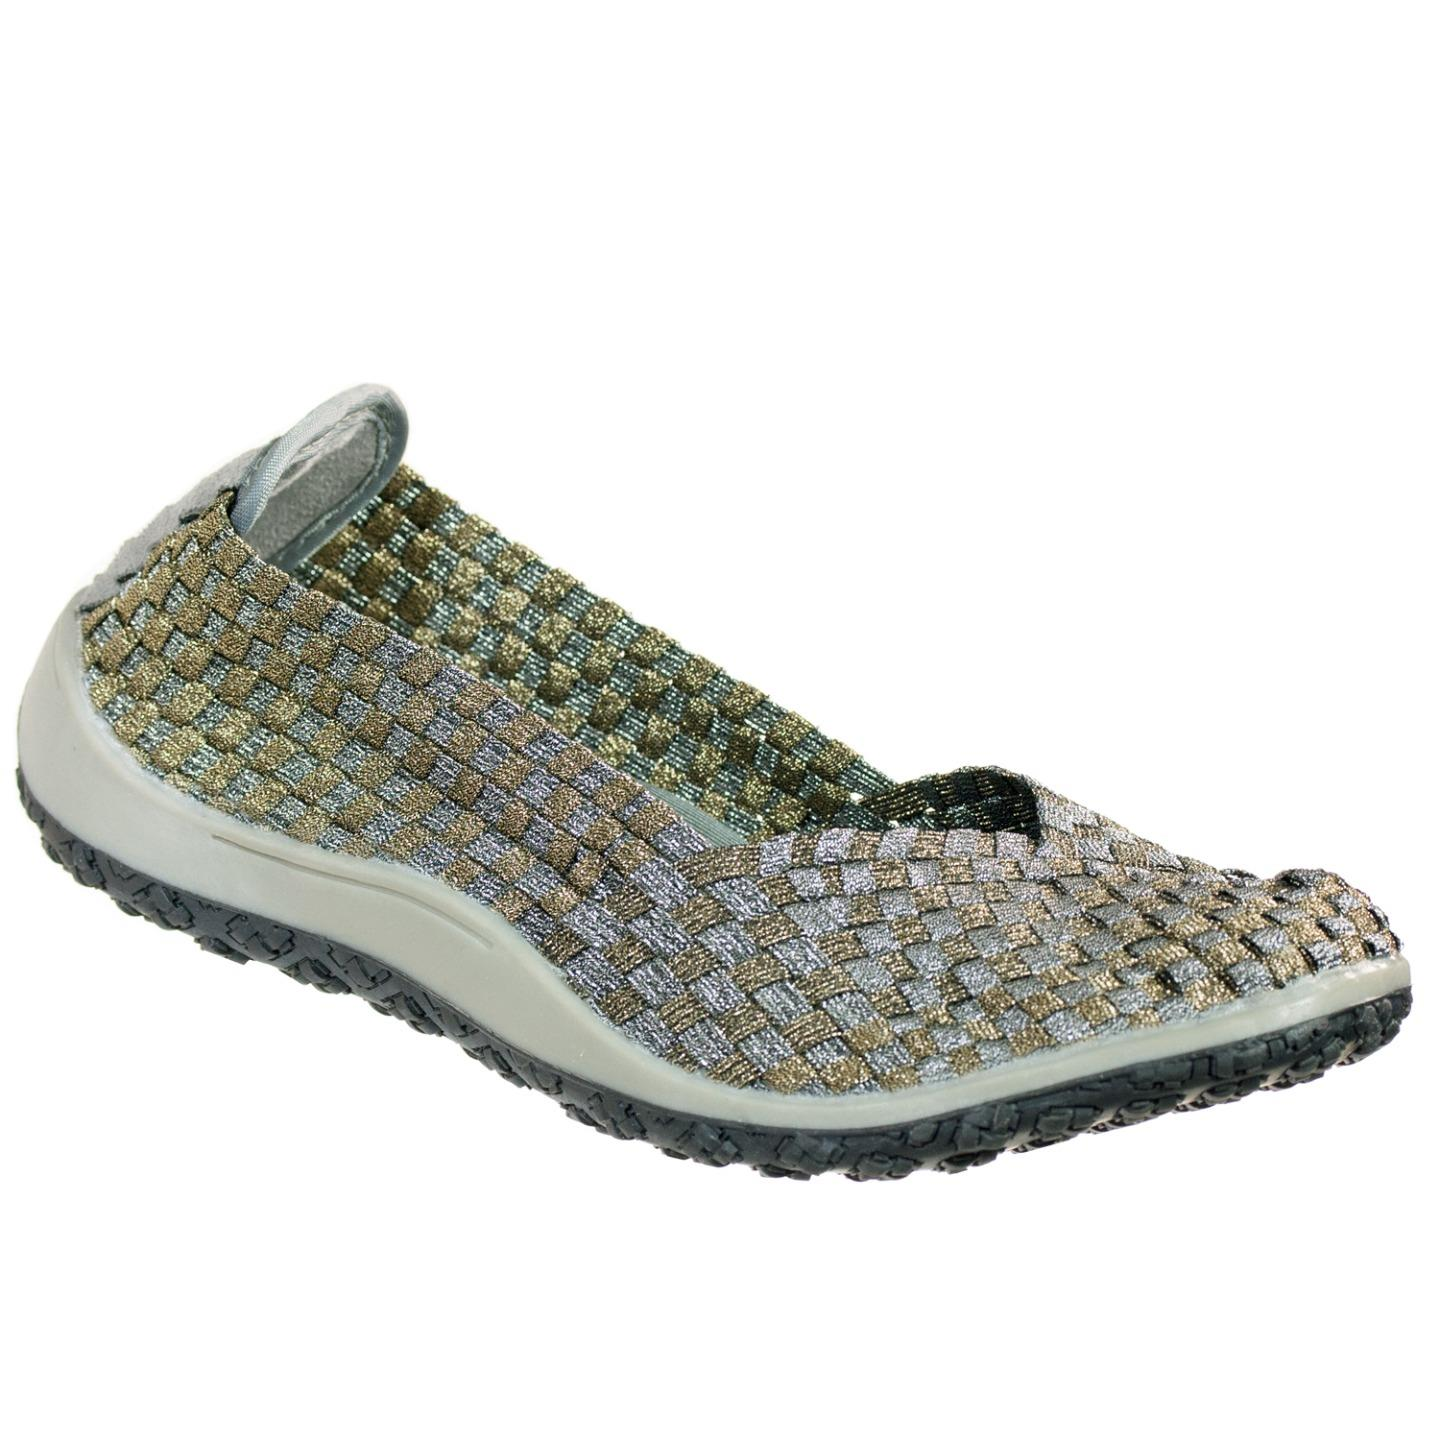 Zee Alexis Spice Womens Woven Slip On Shoes Pewter Bronze 6 M